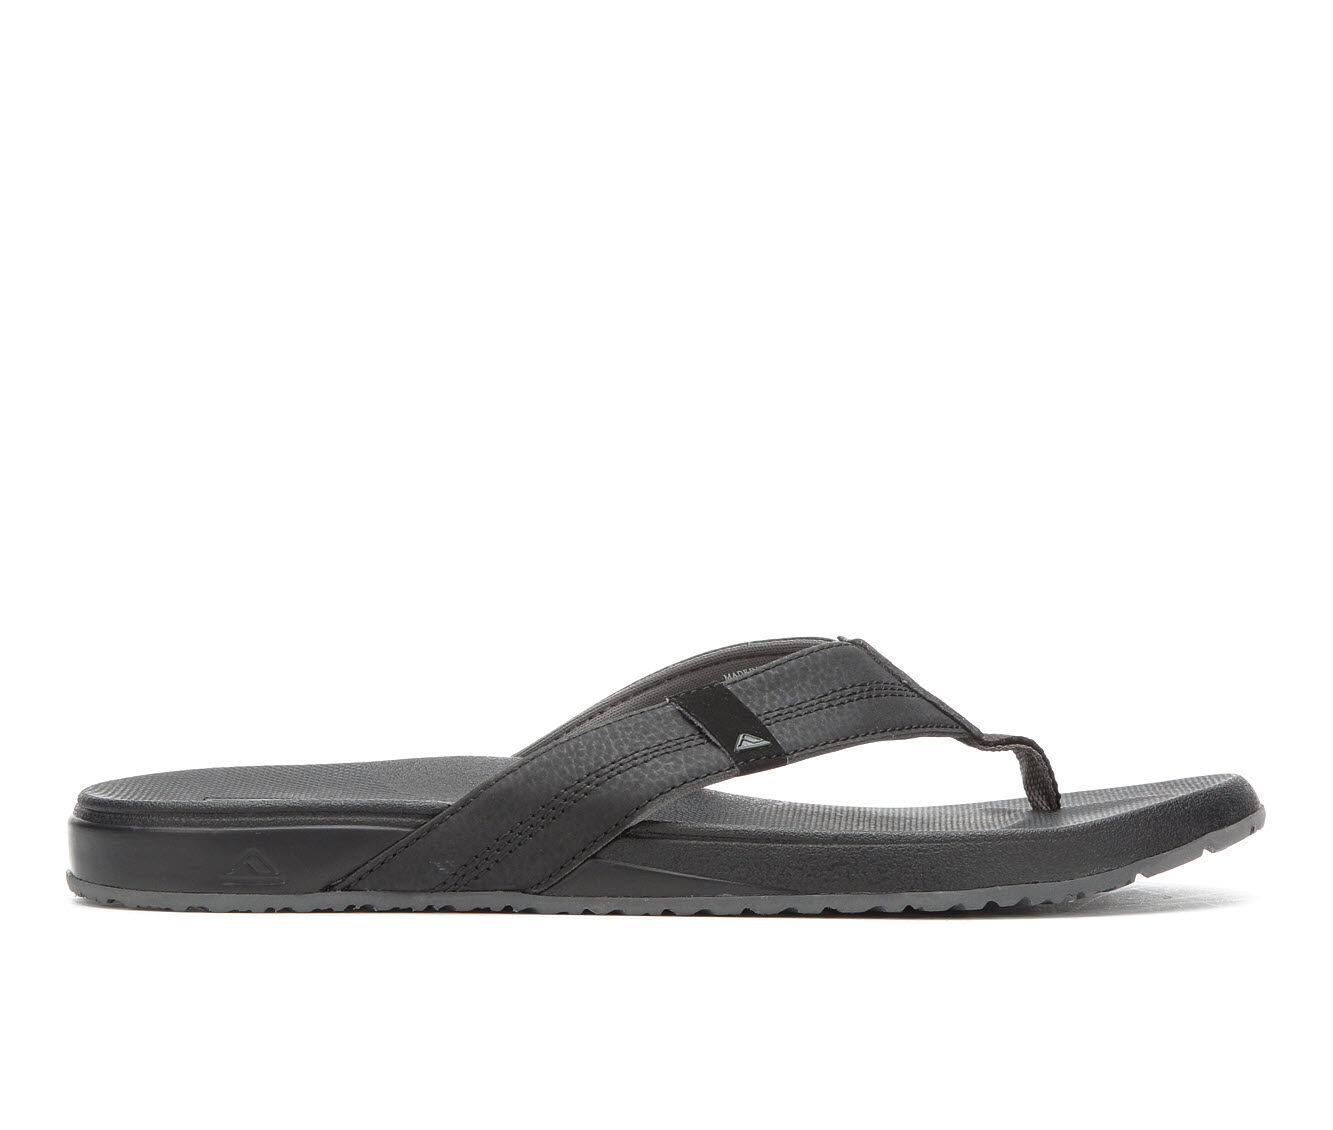 Men's Reef Cushion Bounce Phantom Flip-Flops Black